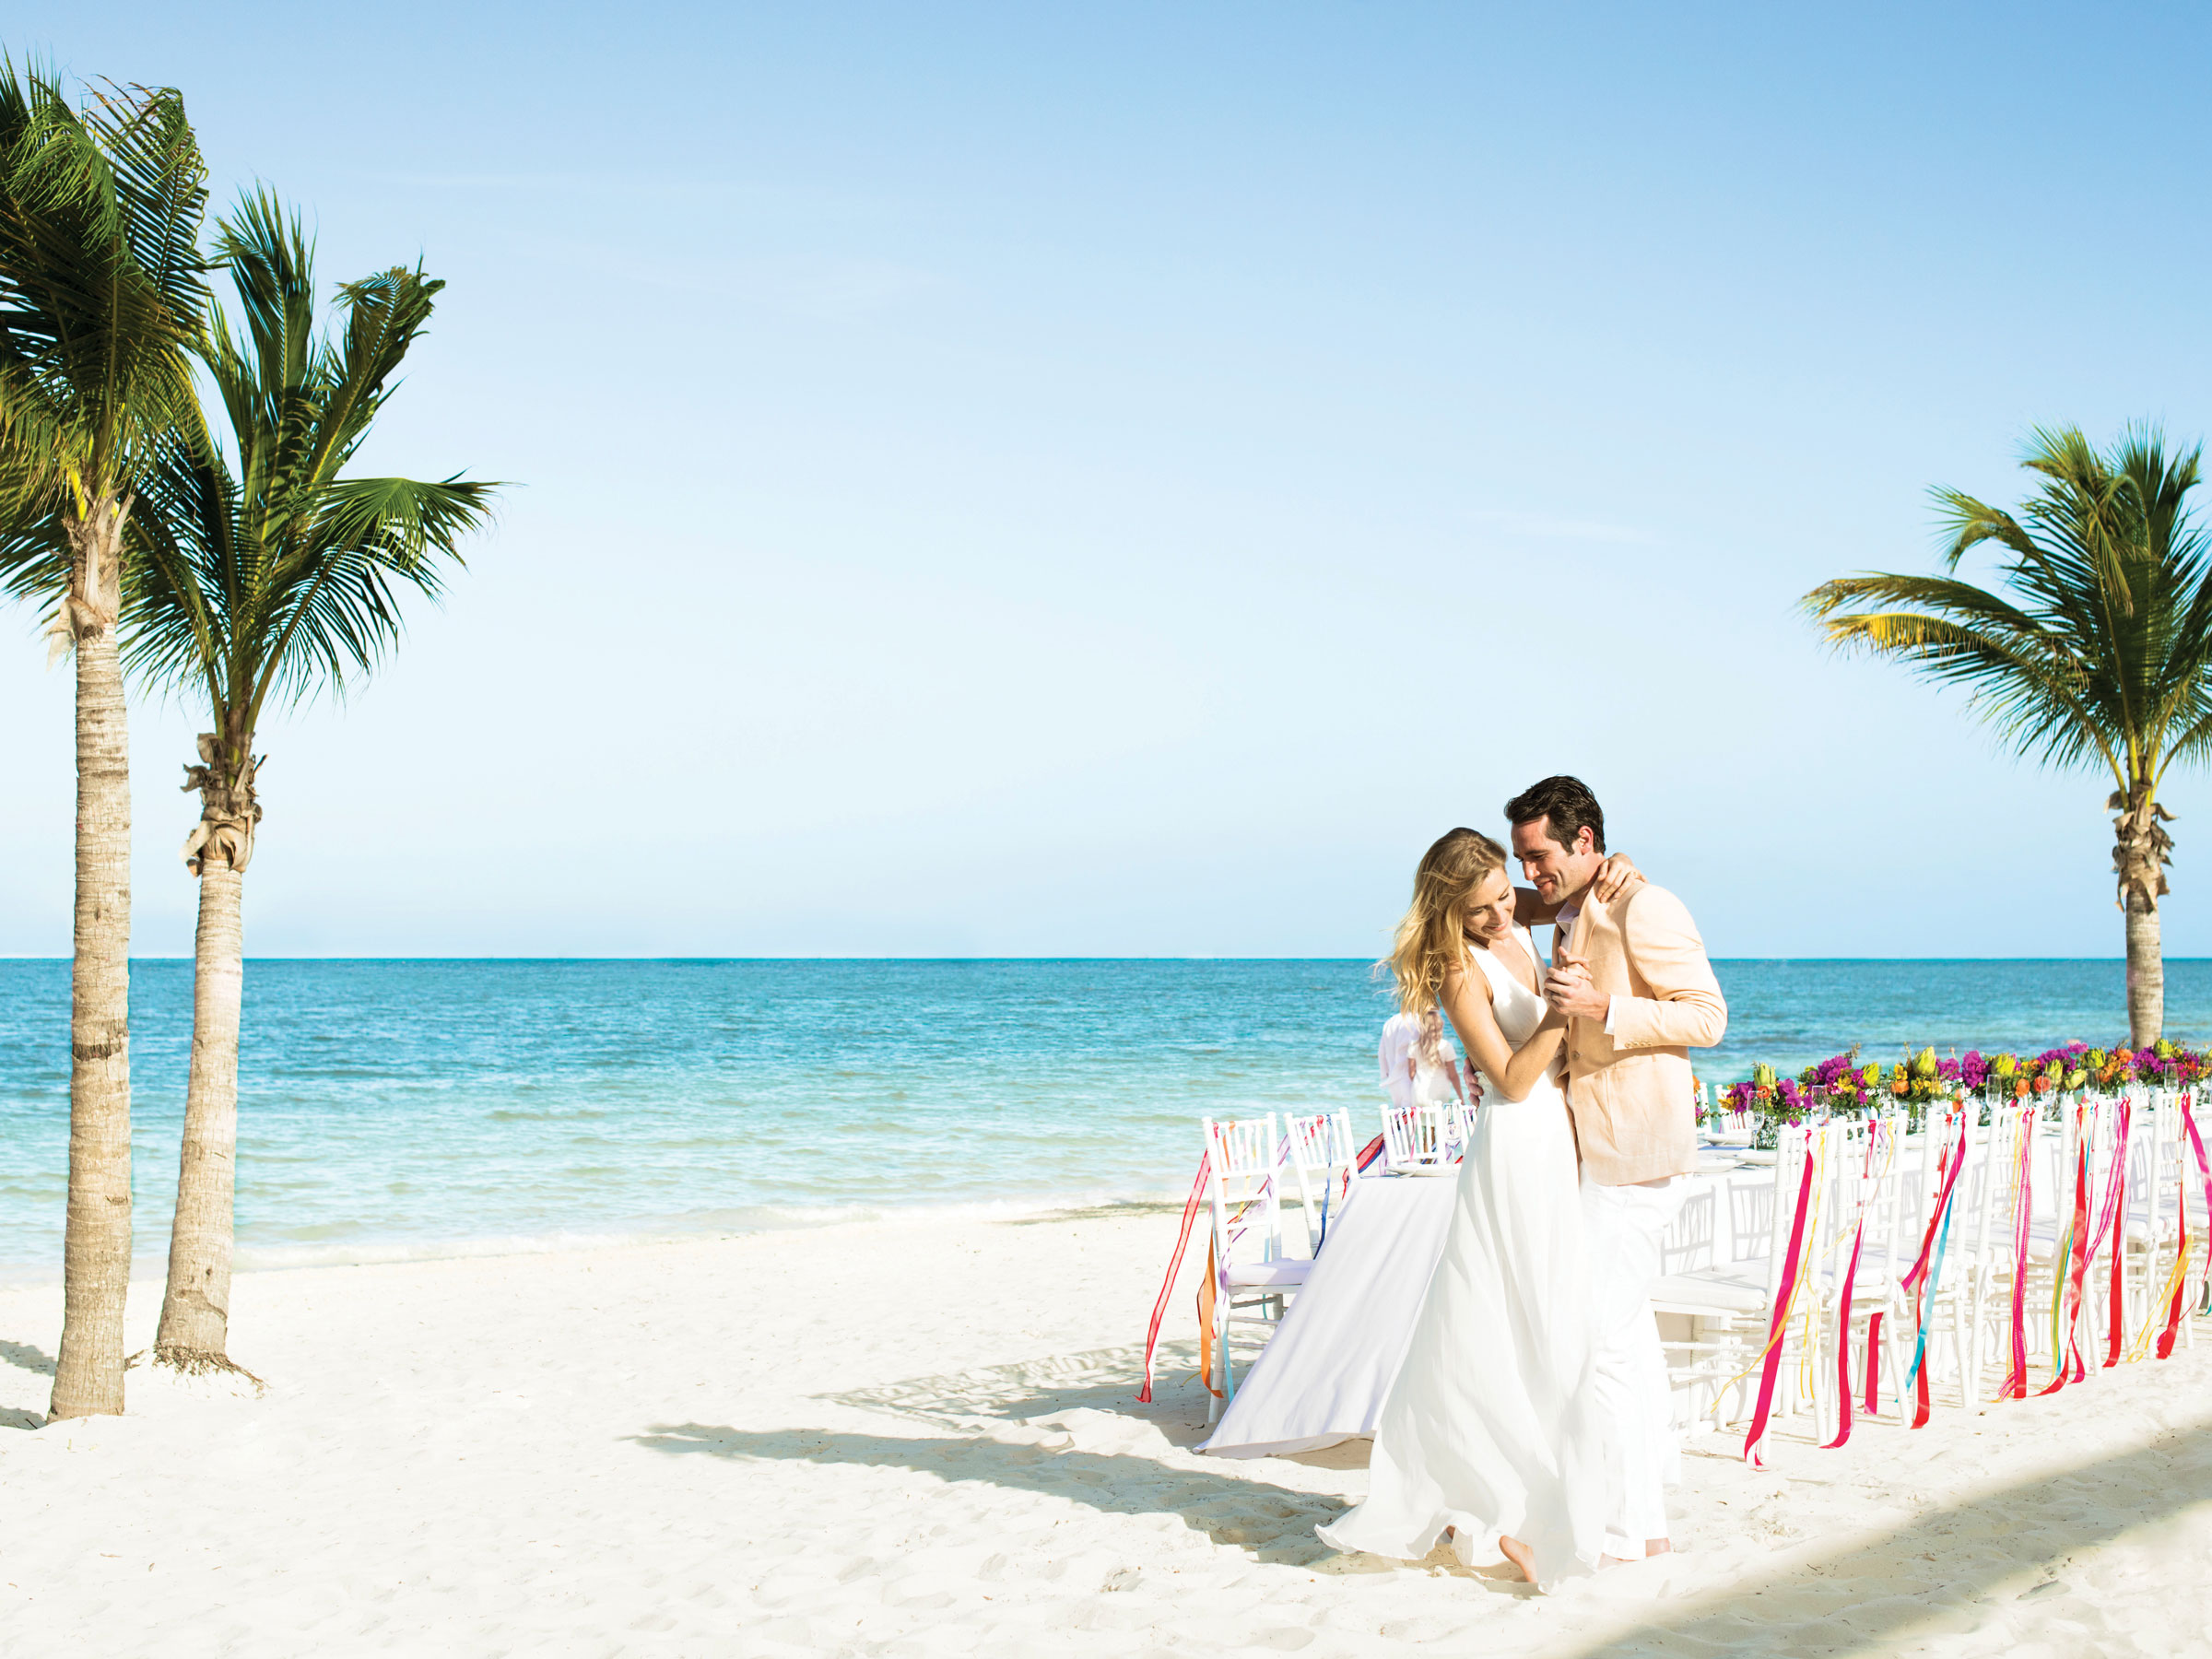 Destination Wedding in a Caribbean all inclusive